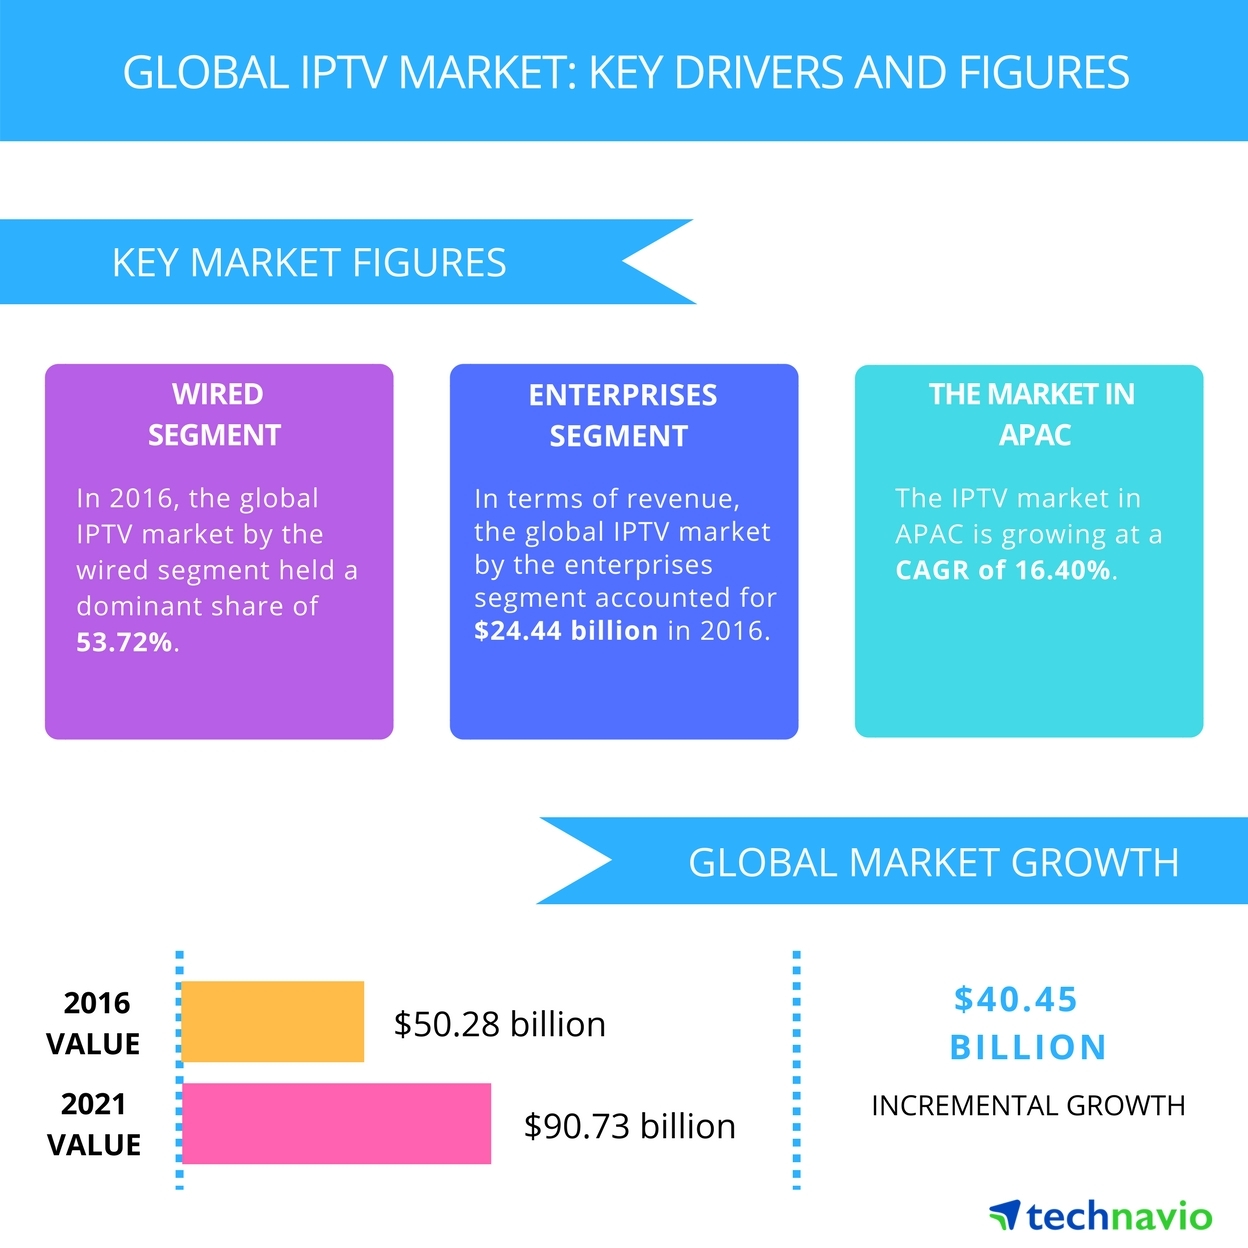 IPTV Market - Drivers and Forecasts by Technavio | Business Wire